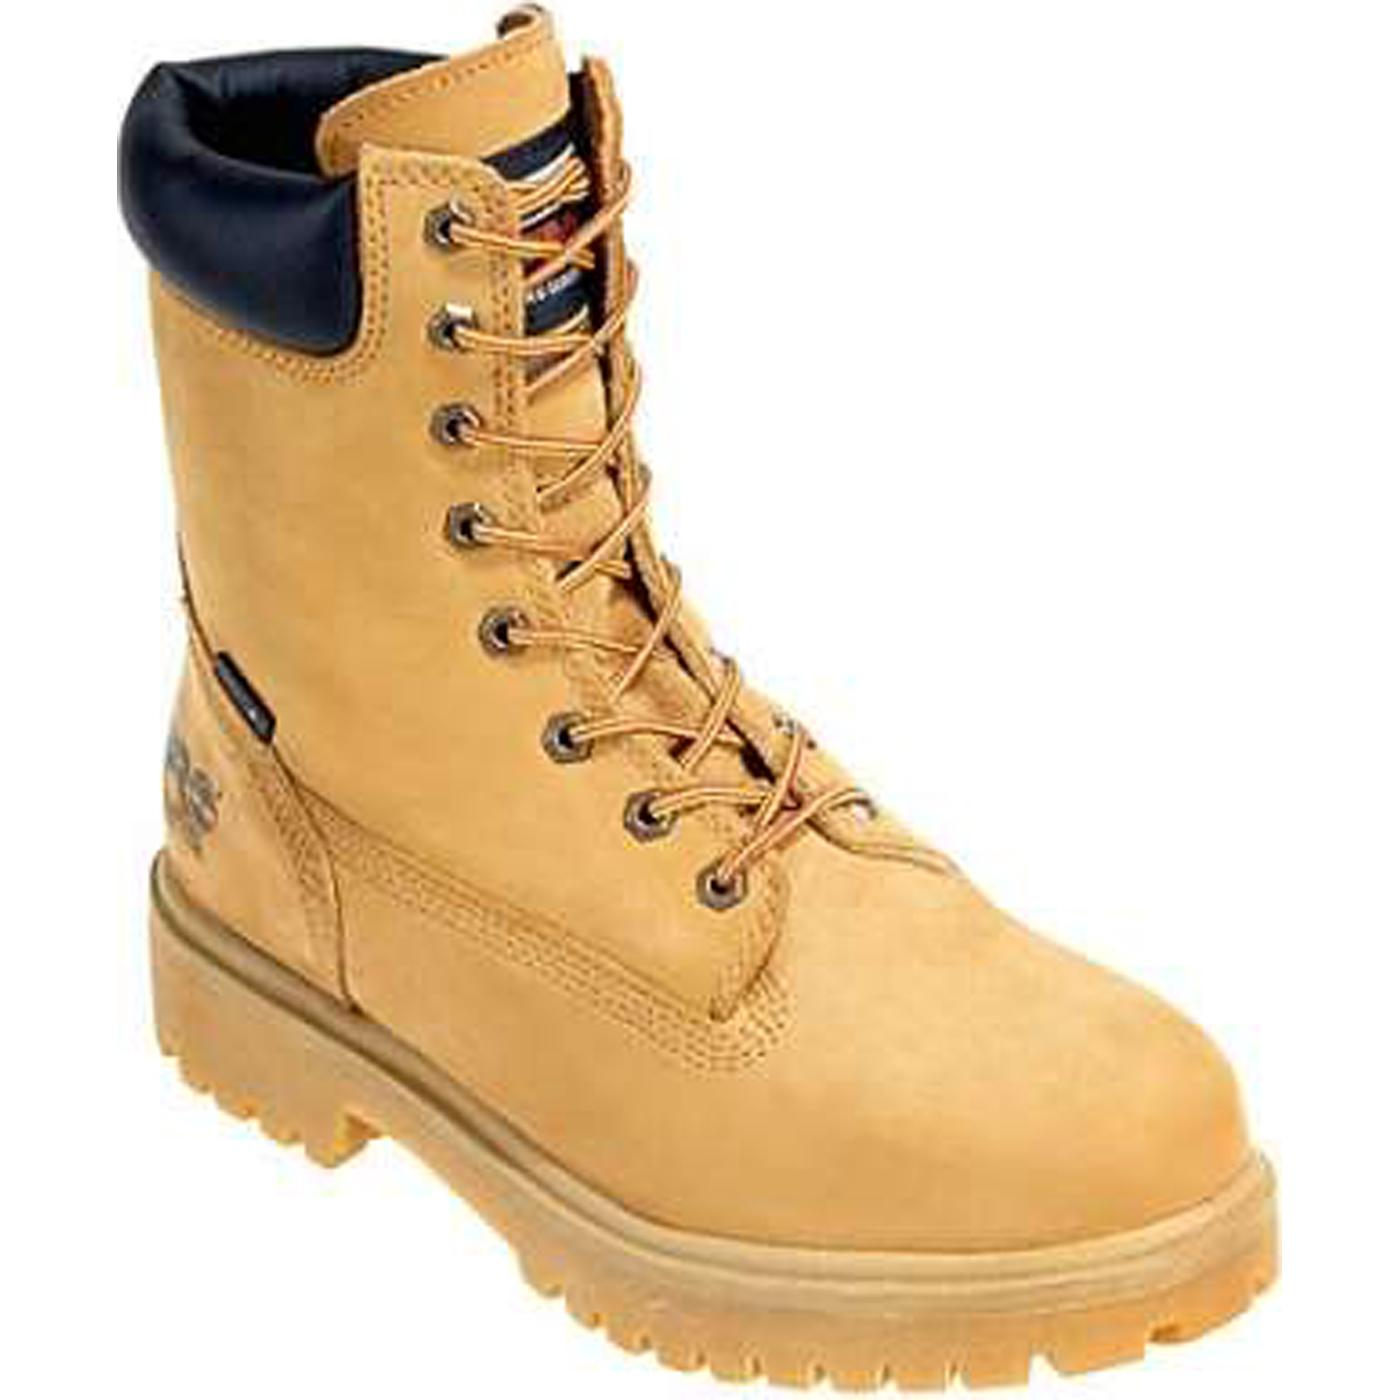 aa3a369e2a56ad Timberland PRO Steel Toe Waterproof Insulated BootTimberland PRO Steel Toe  Waterproof Insulated Boot